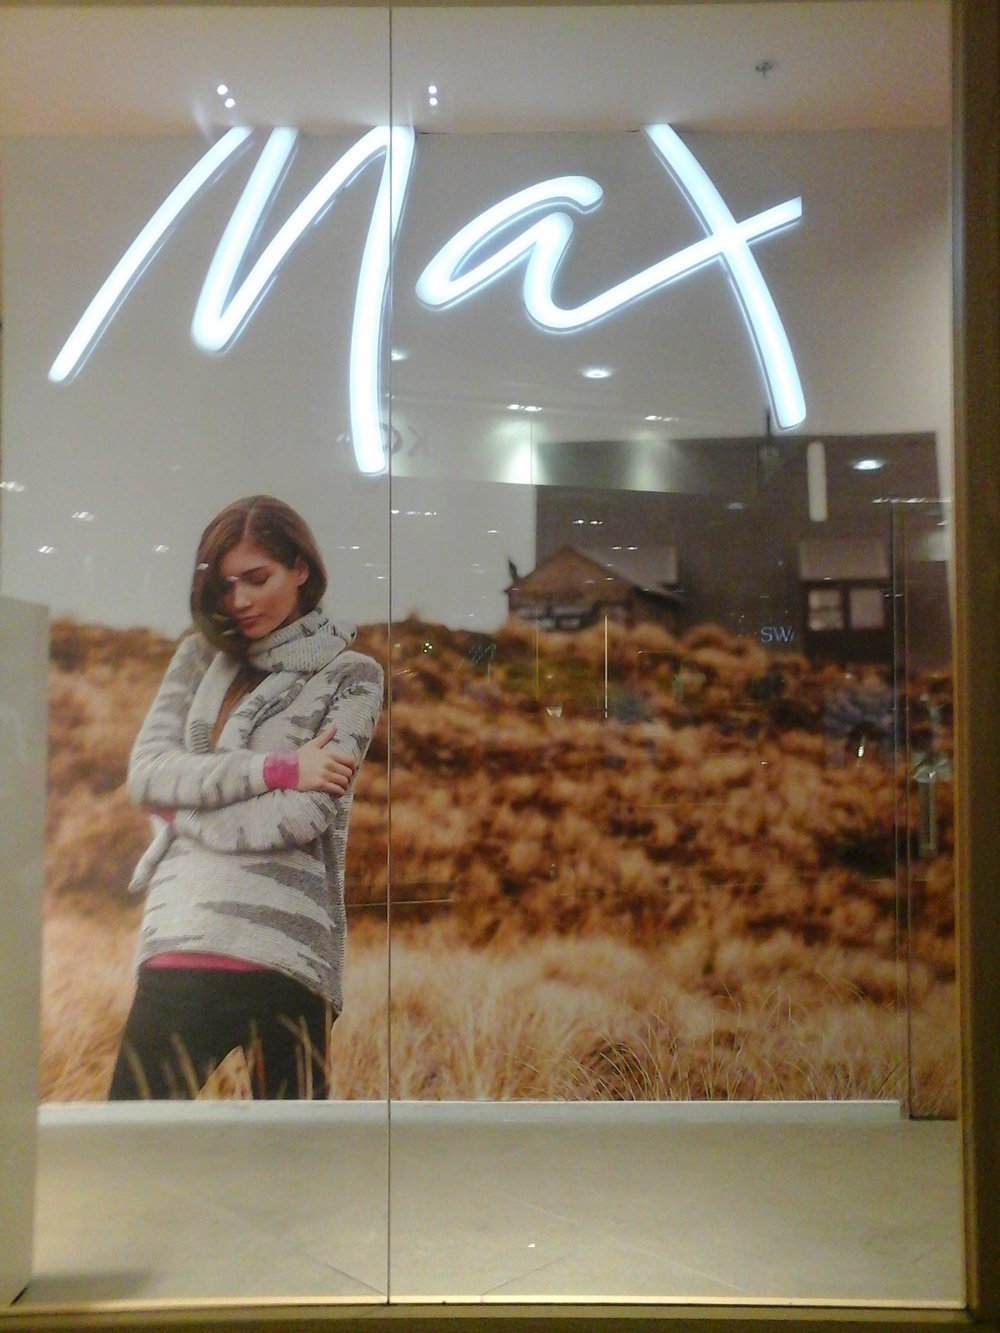 Max Large Wall Graphic.jpg